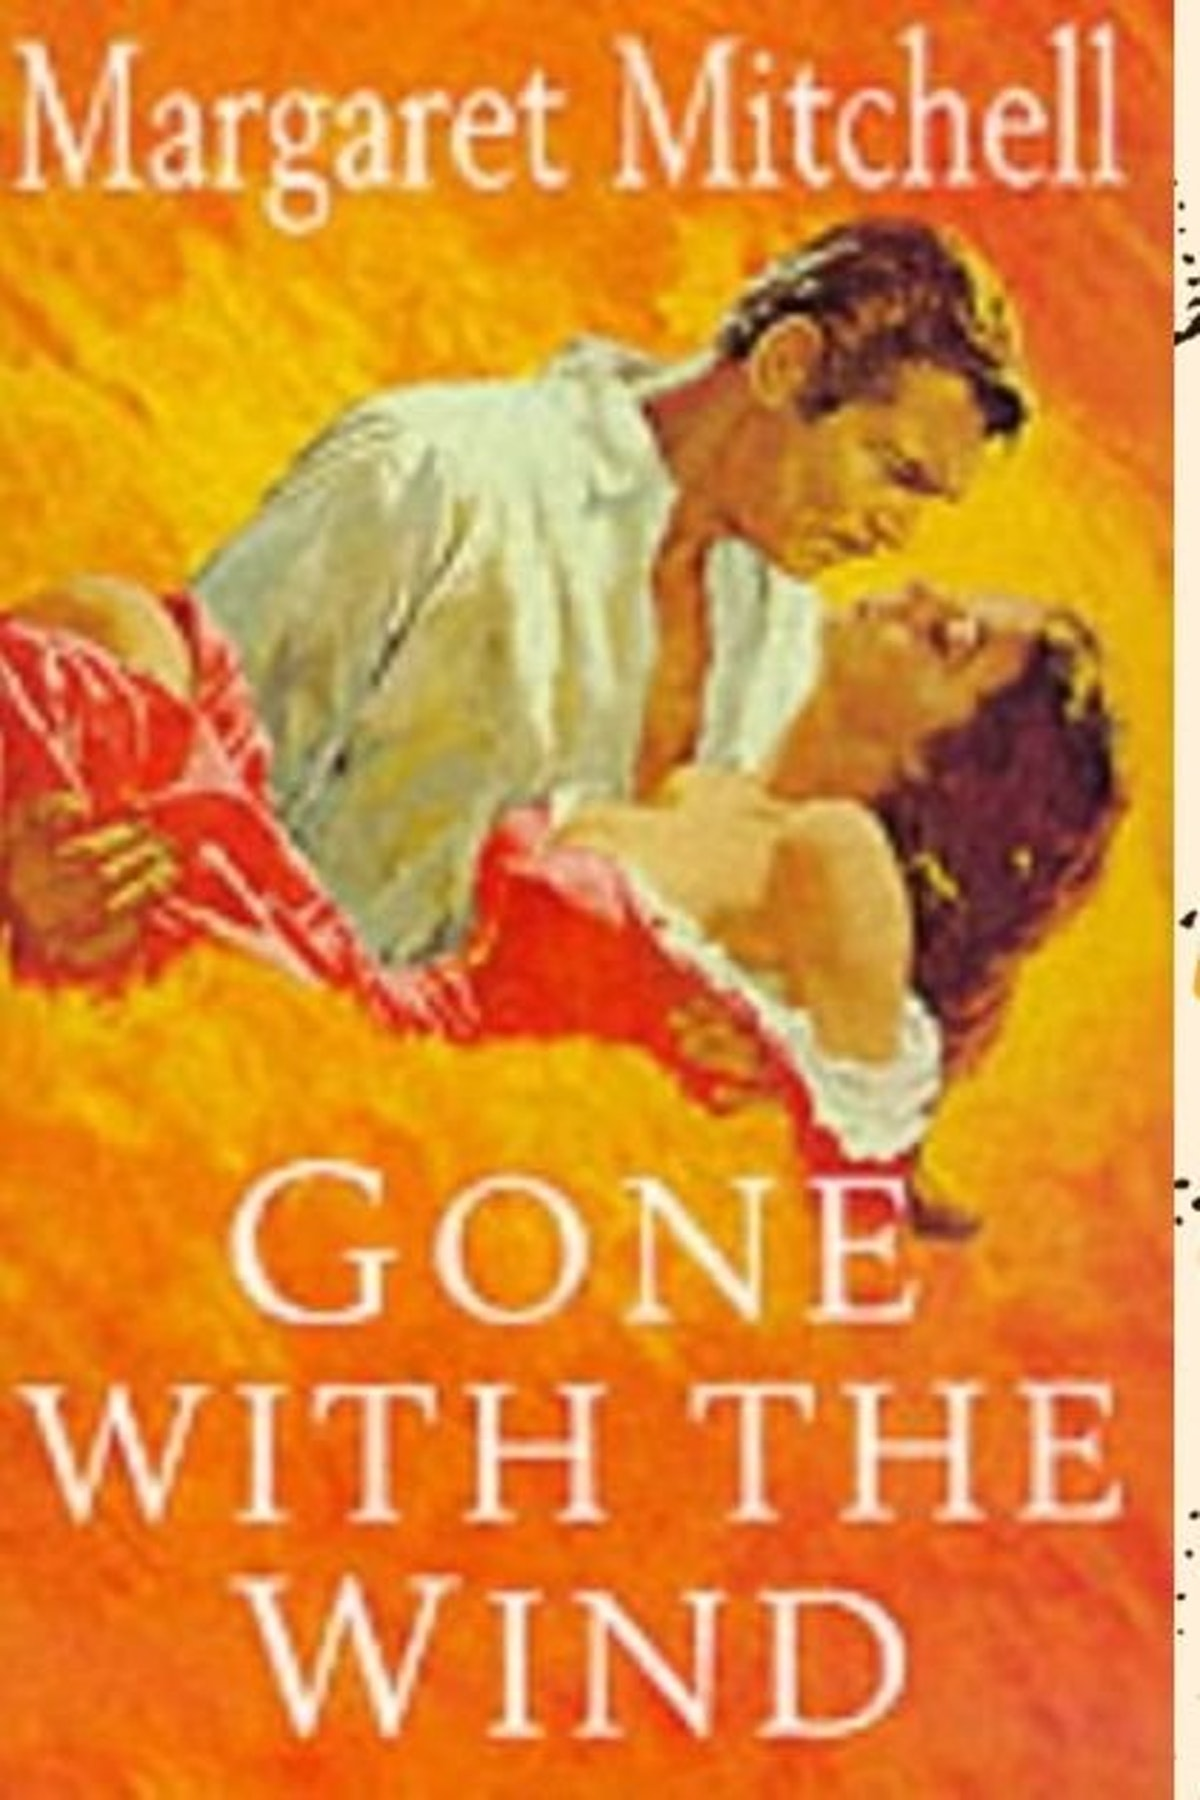 a literary analysis of gone with the wind by margaret mitchell This study examines the chinese translation of personal names in margaret mitchell's gone with the wind (gwtw) on the translation of names in margaret mitchell's gone with have been a subject of fascination for onomasticians and literary scholars studies of names in fantasy and.